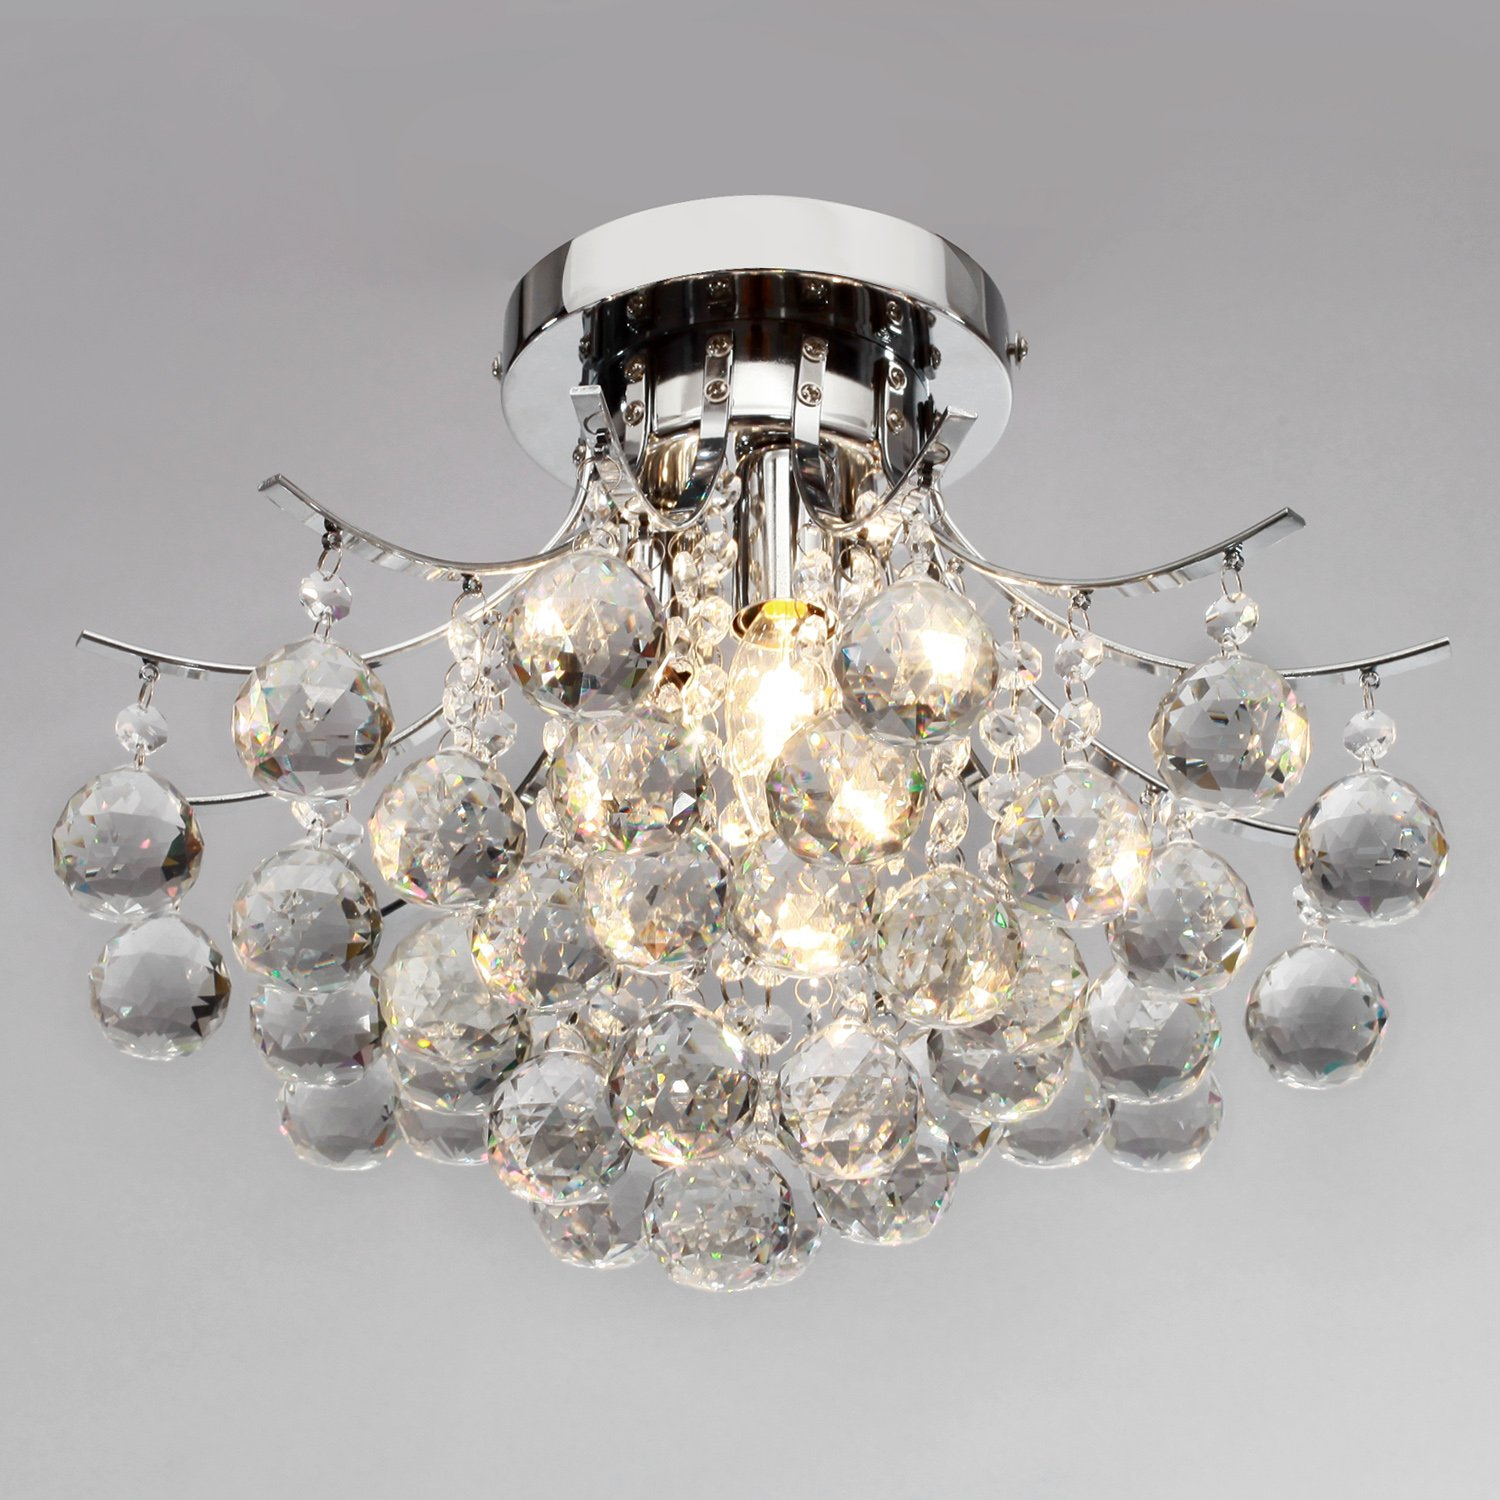 design light metal llc bulb balloon chandelier p consignment with